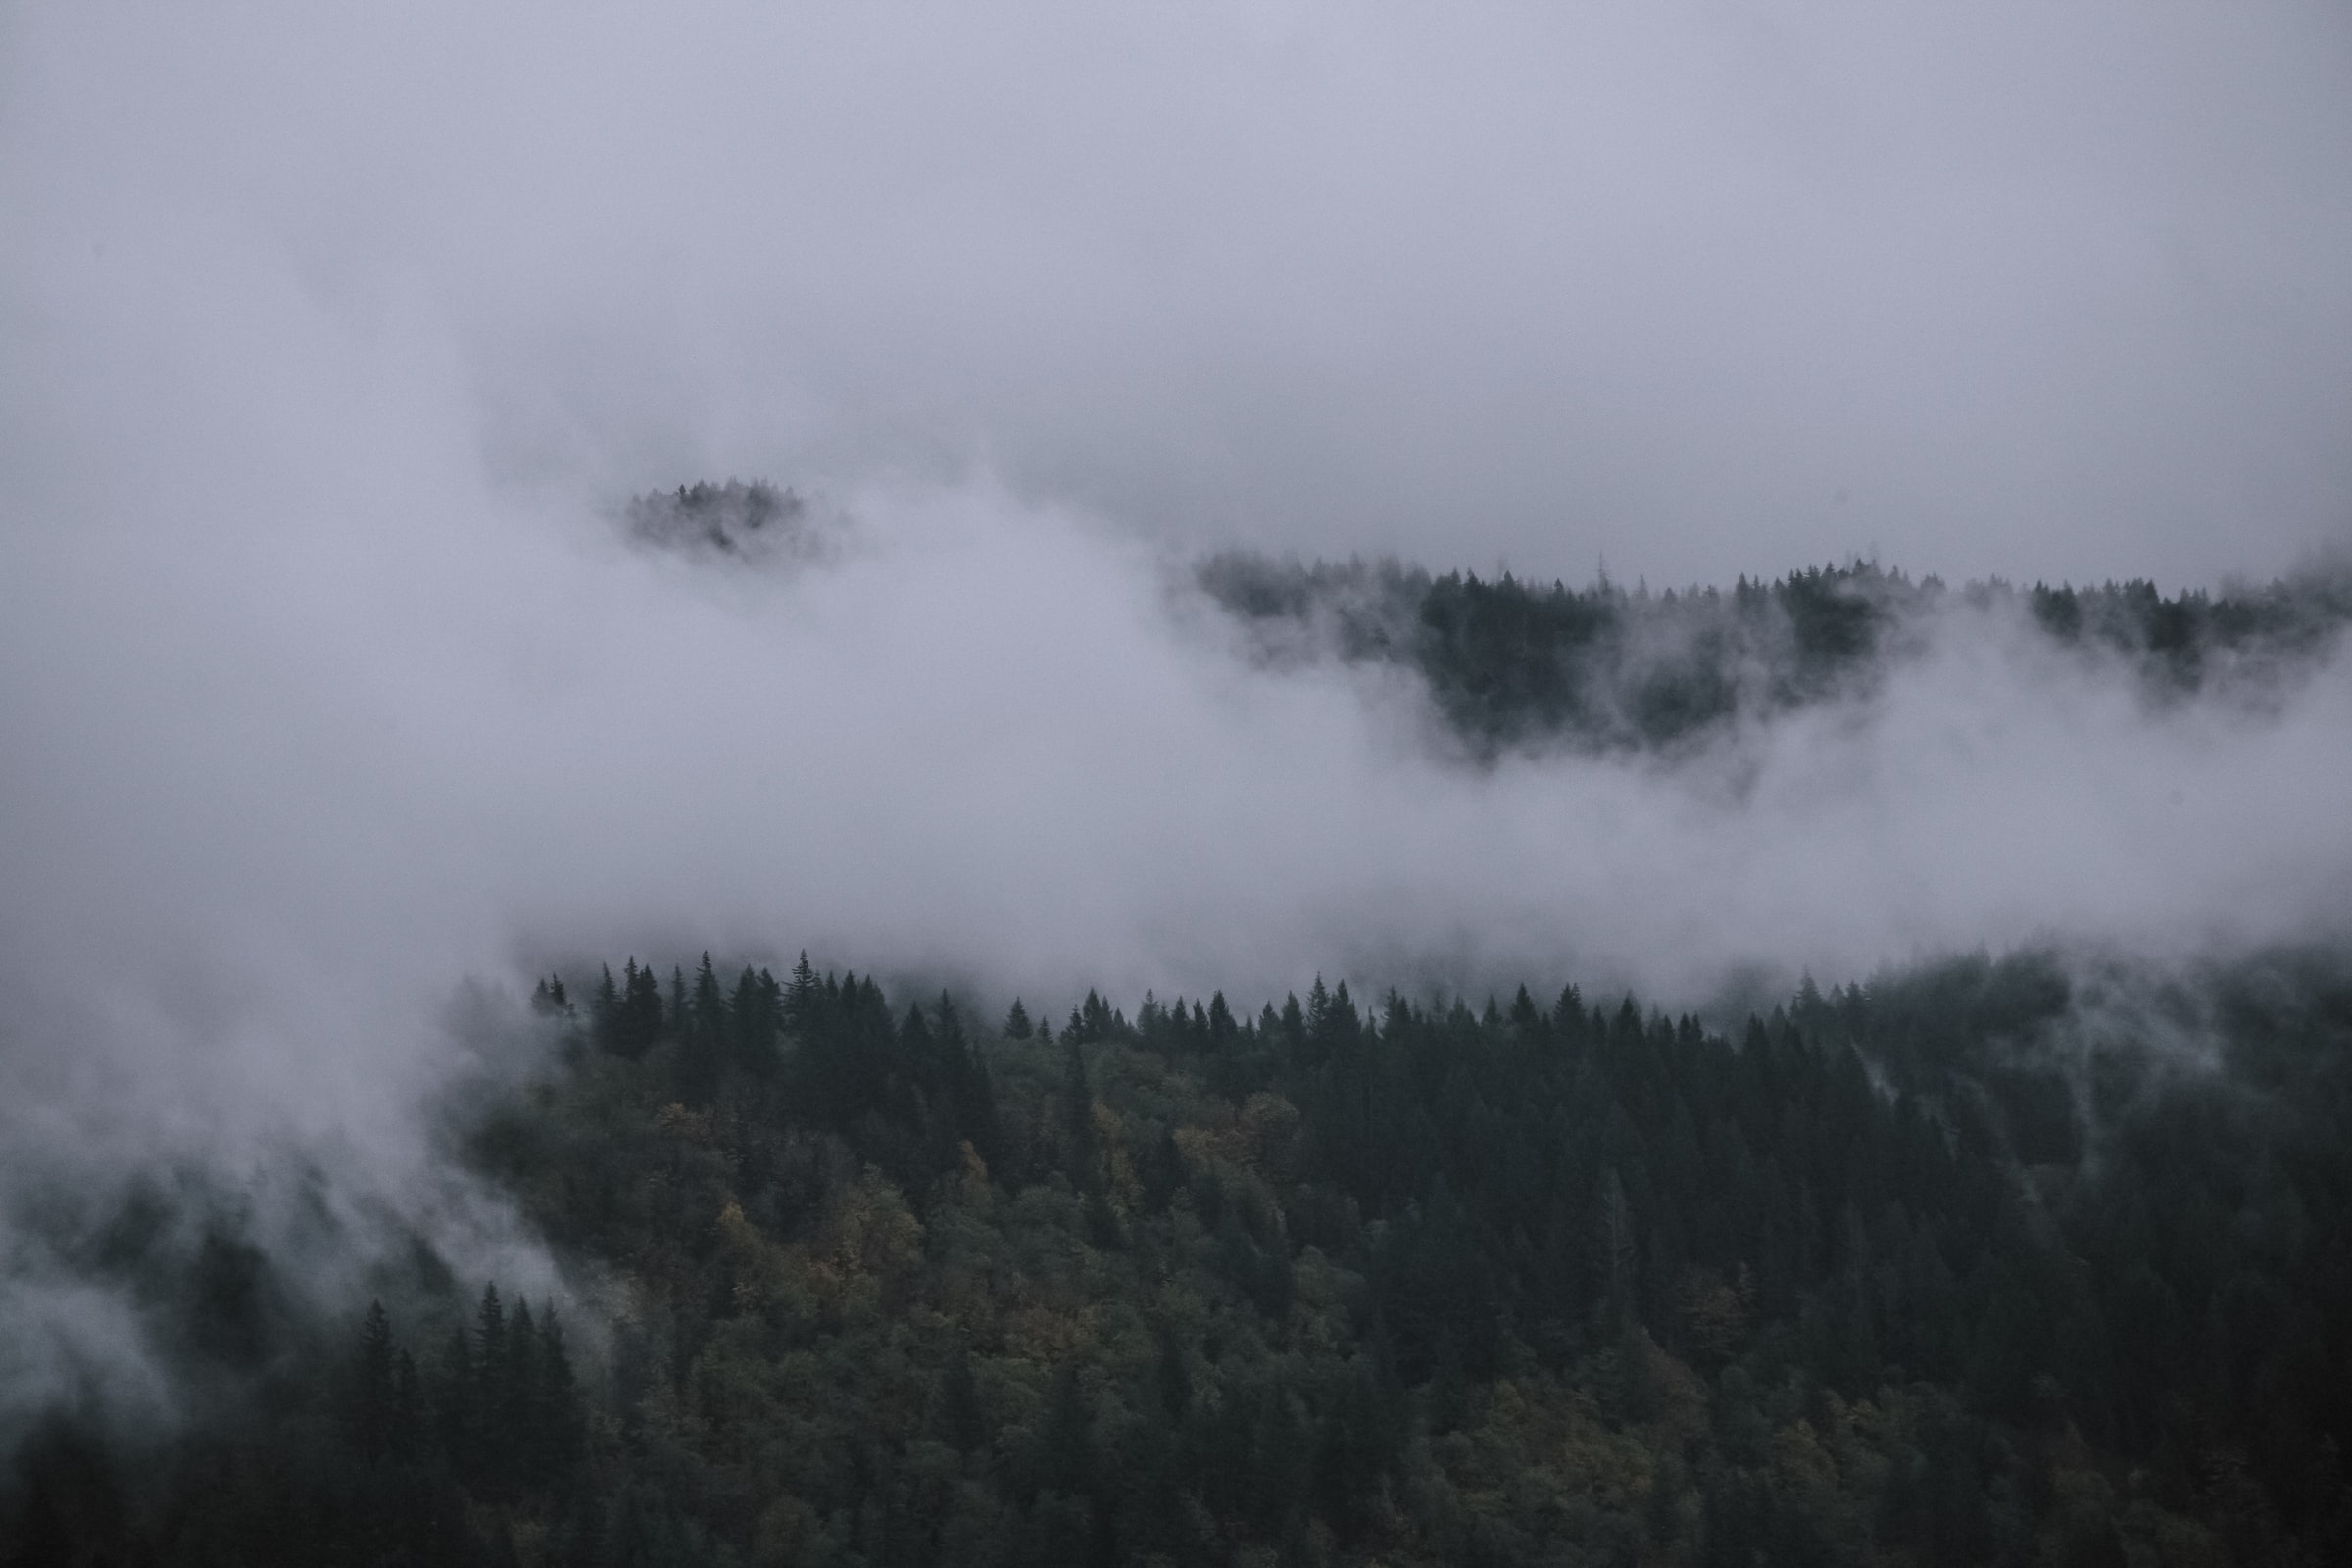 Fog covering hill of trees